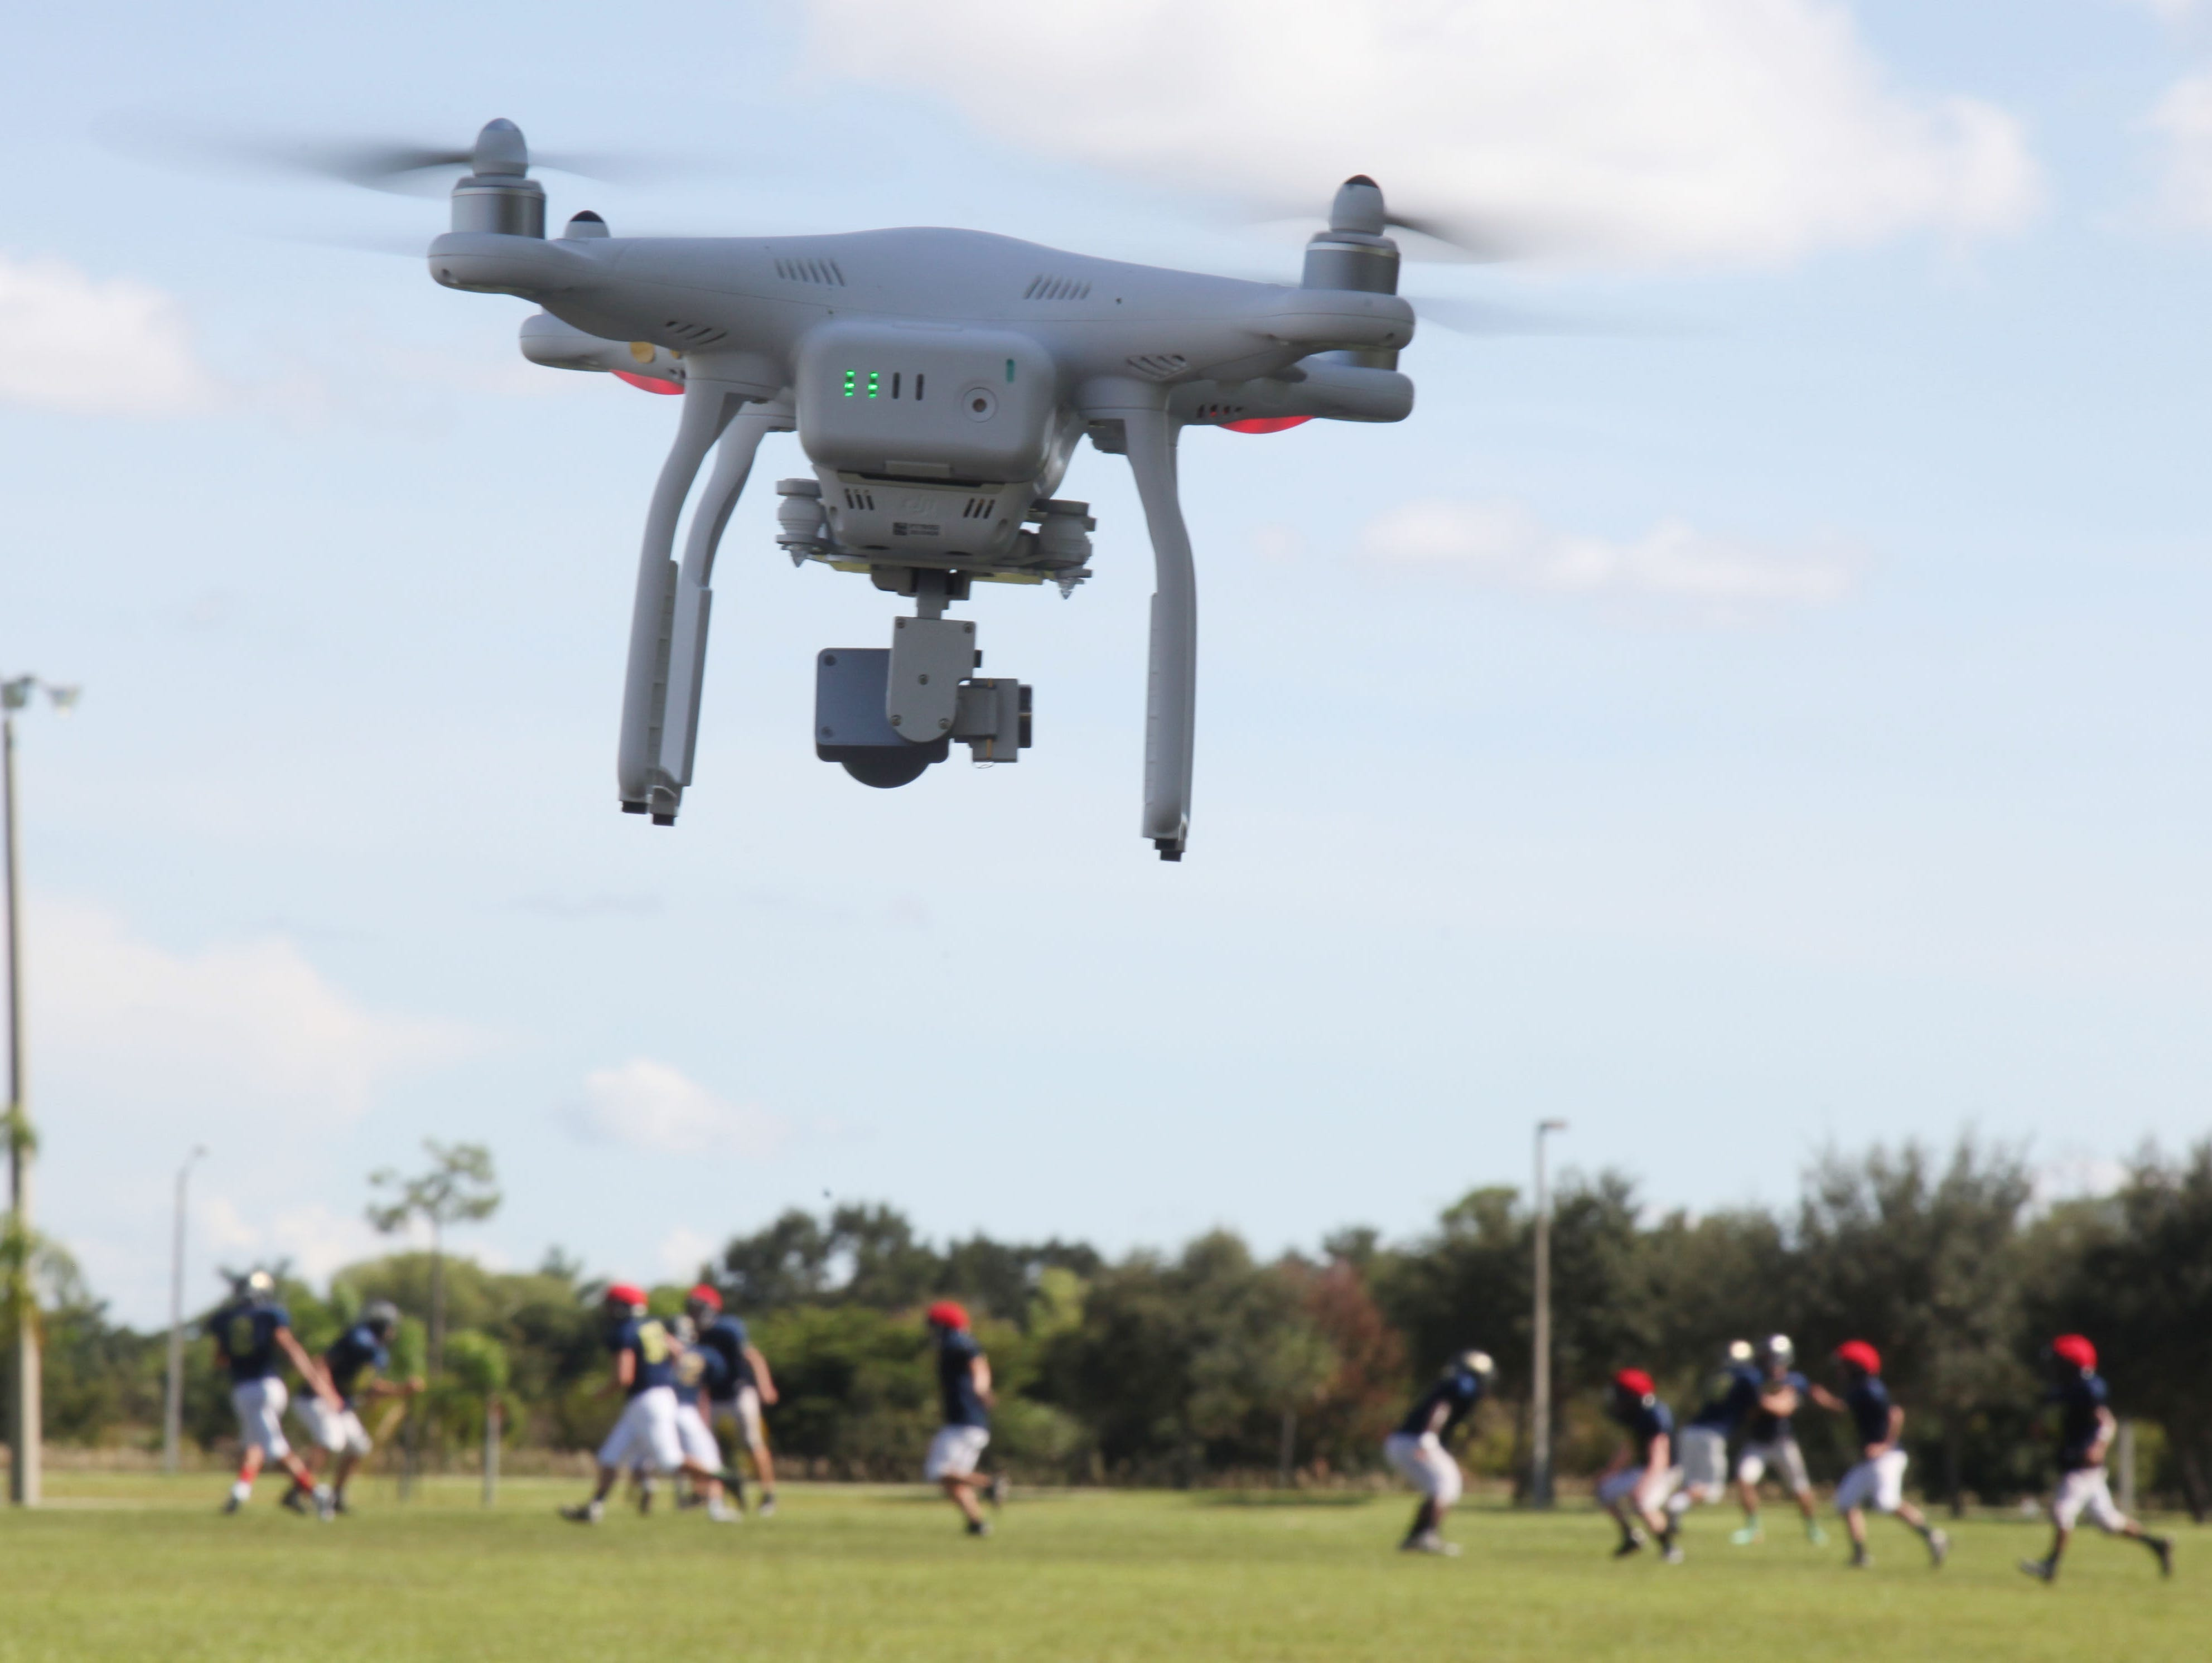 A DJI Pantom 3 Professional drone operated by Mark Harden flies over the practice field at Southwest Florida Christian Academy.